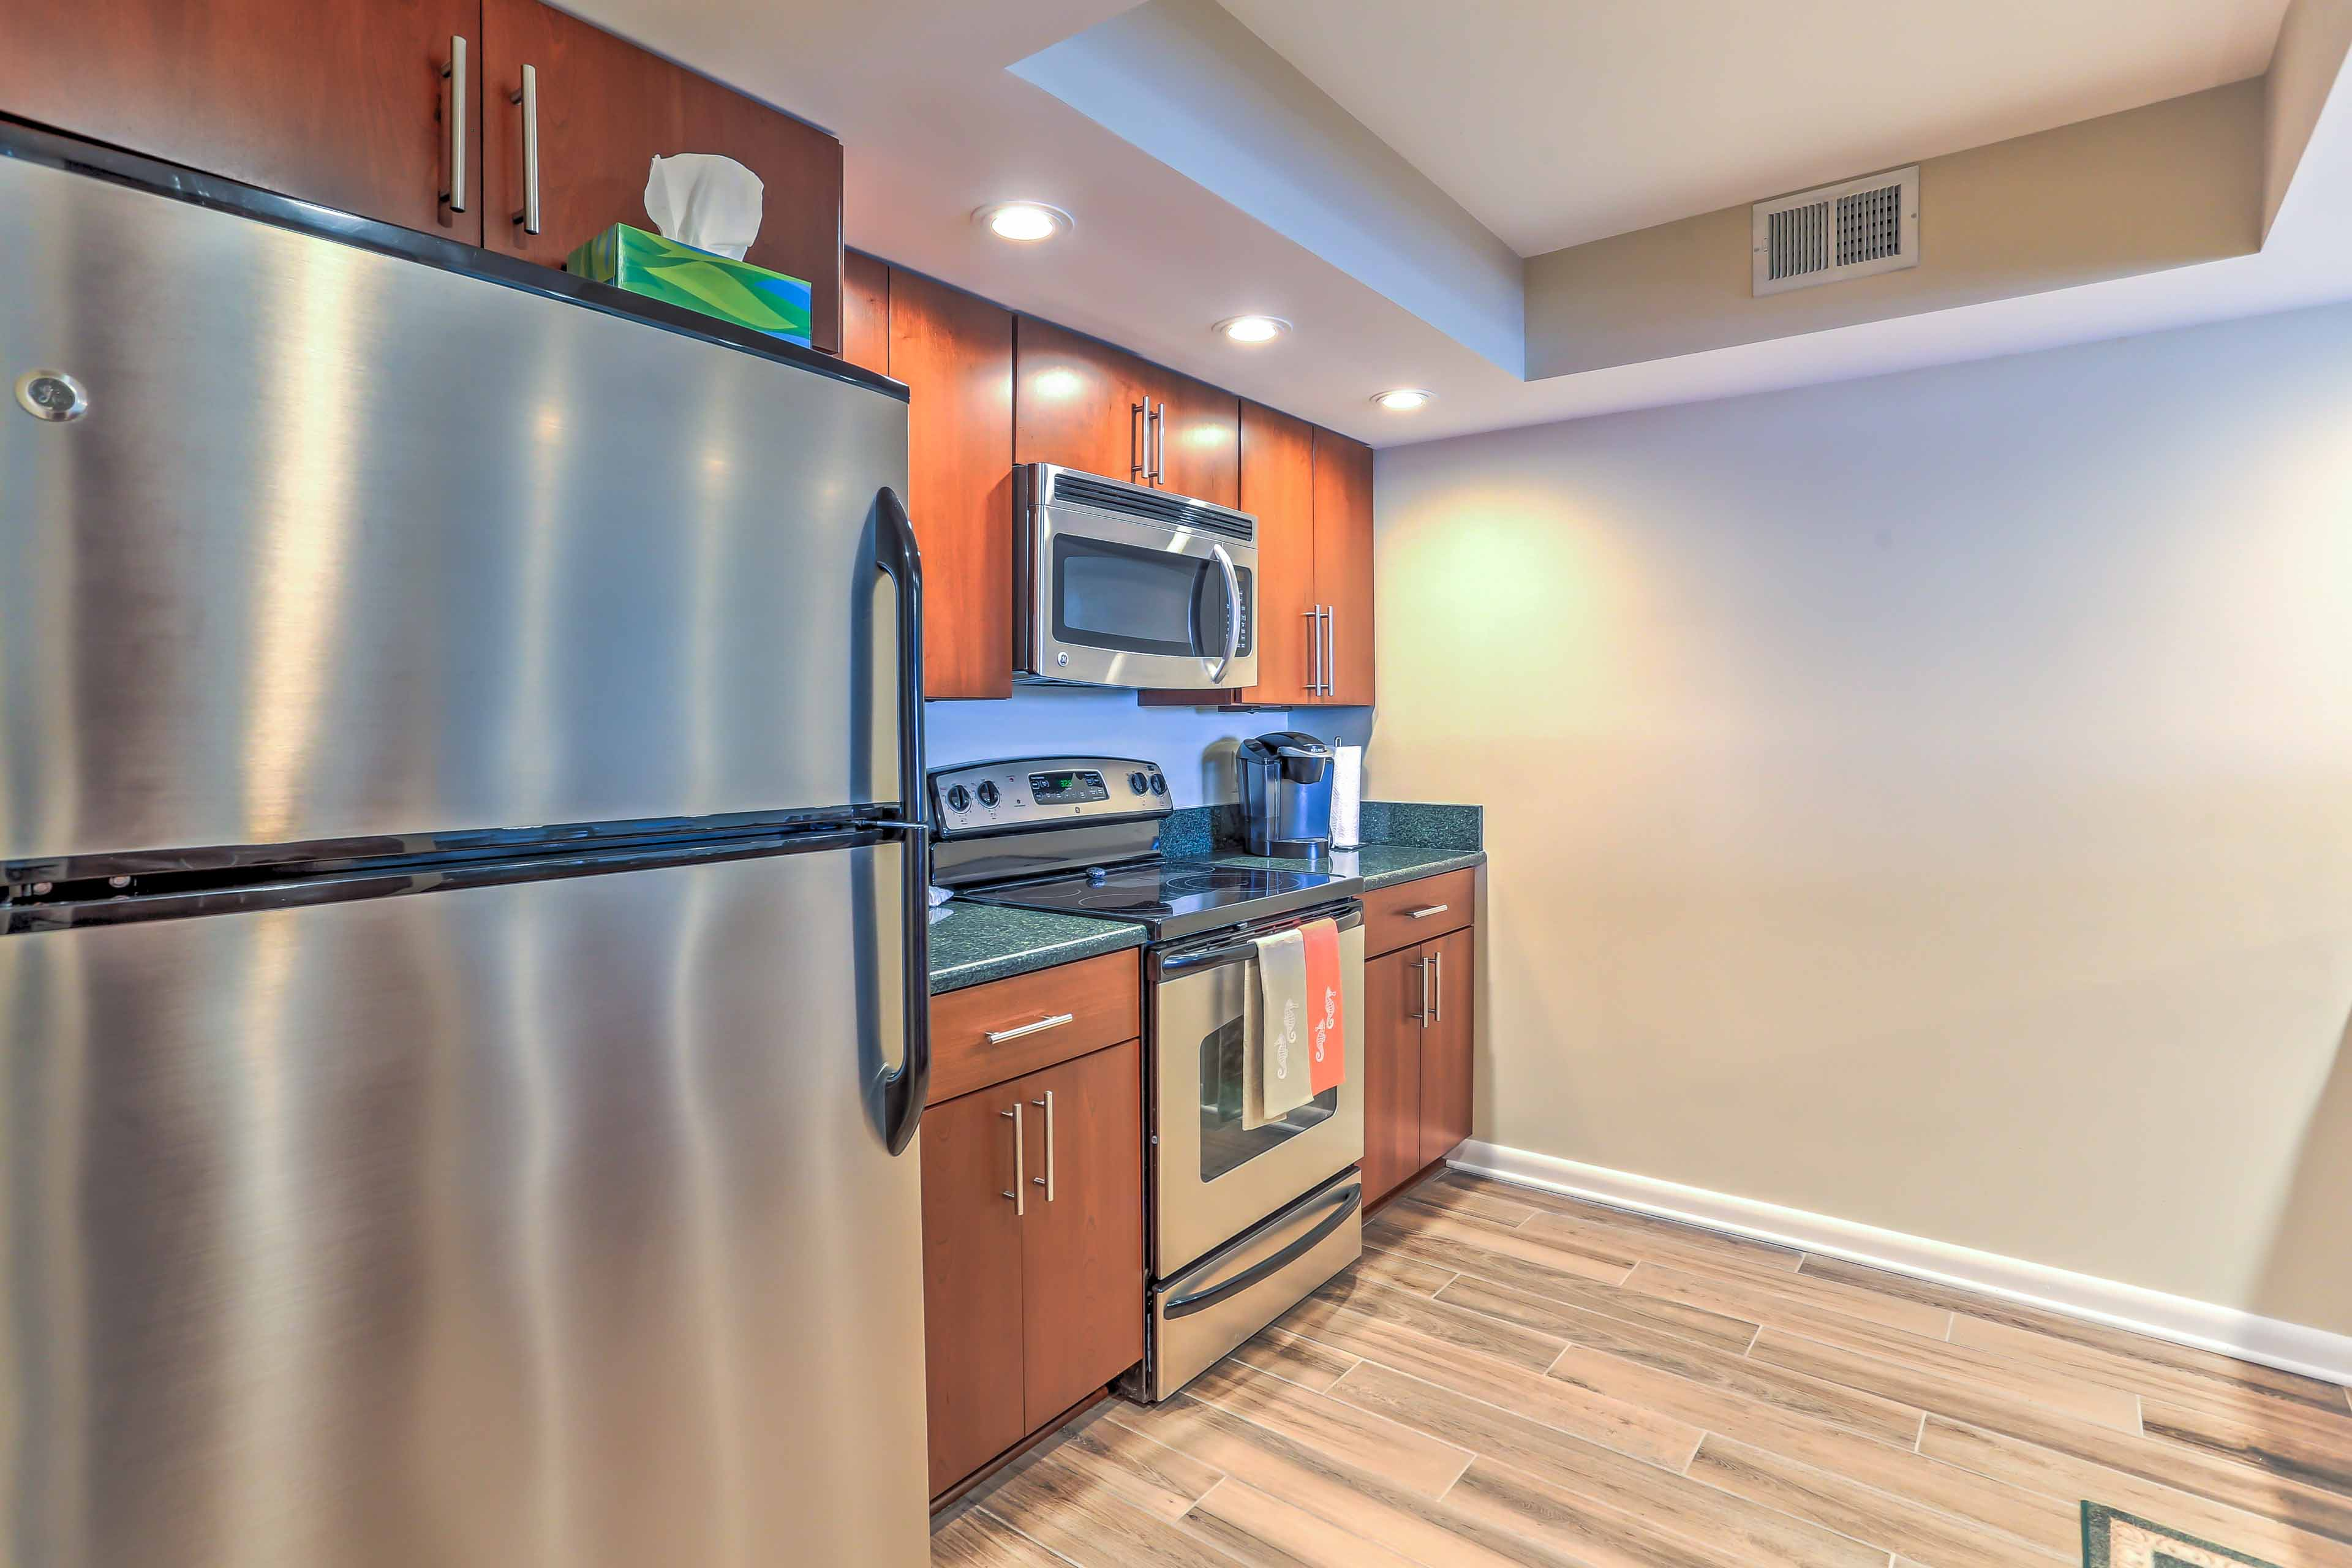 The kitchen offers stainless steel appliances and granite counter tops.